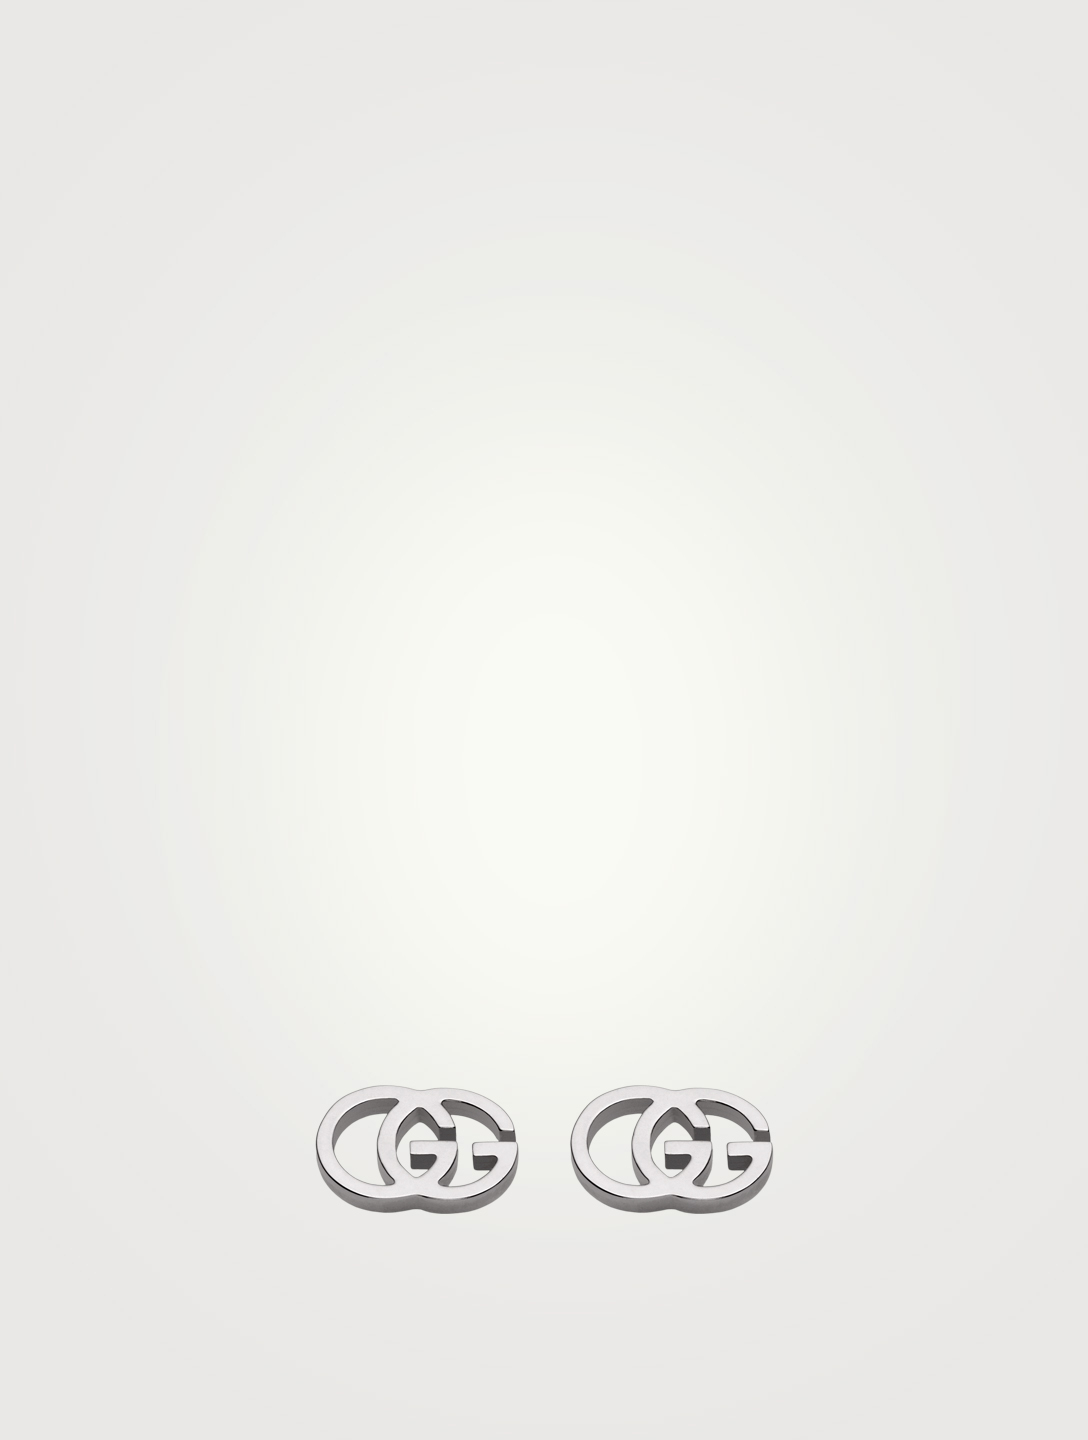 33ac471de4e GUCCI 18K White Gold GG Stud Earrings